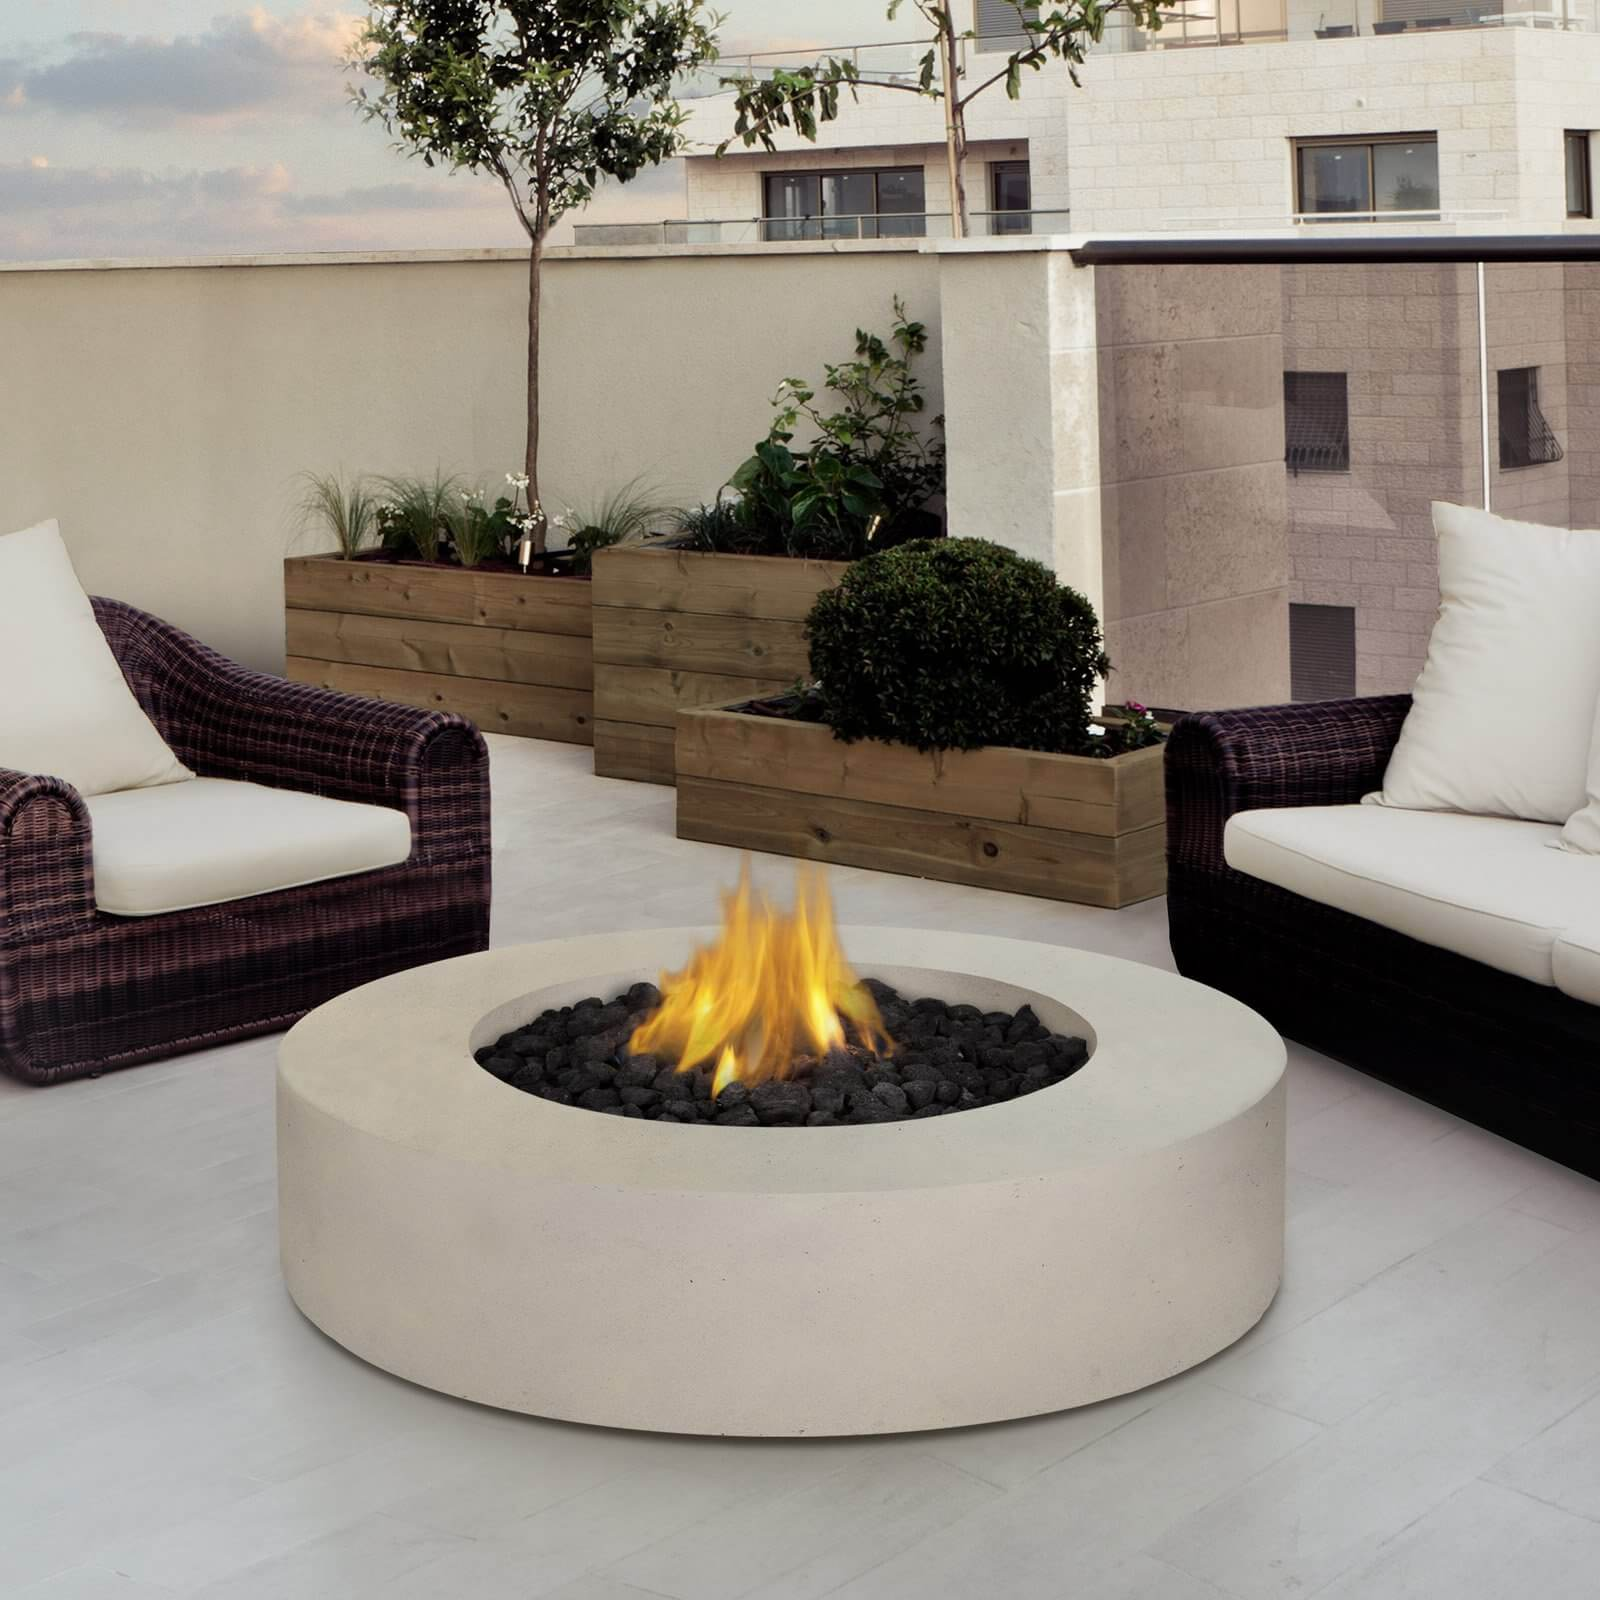 Want A Simple And Elegant Fire Pit Table? Then Why Not Get This White Marble